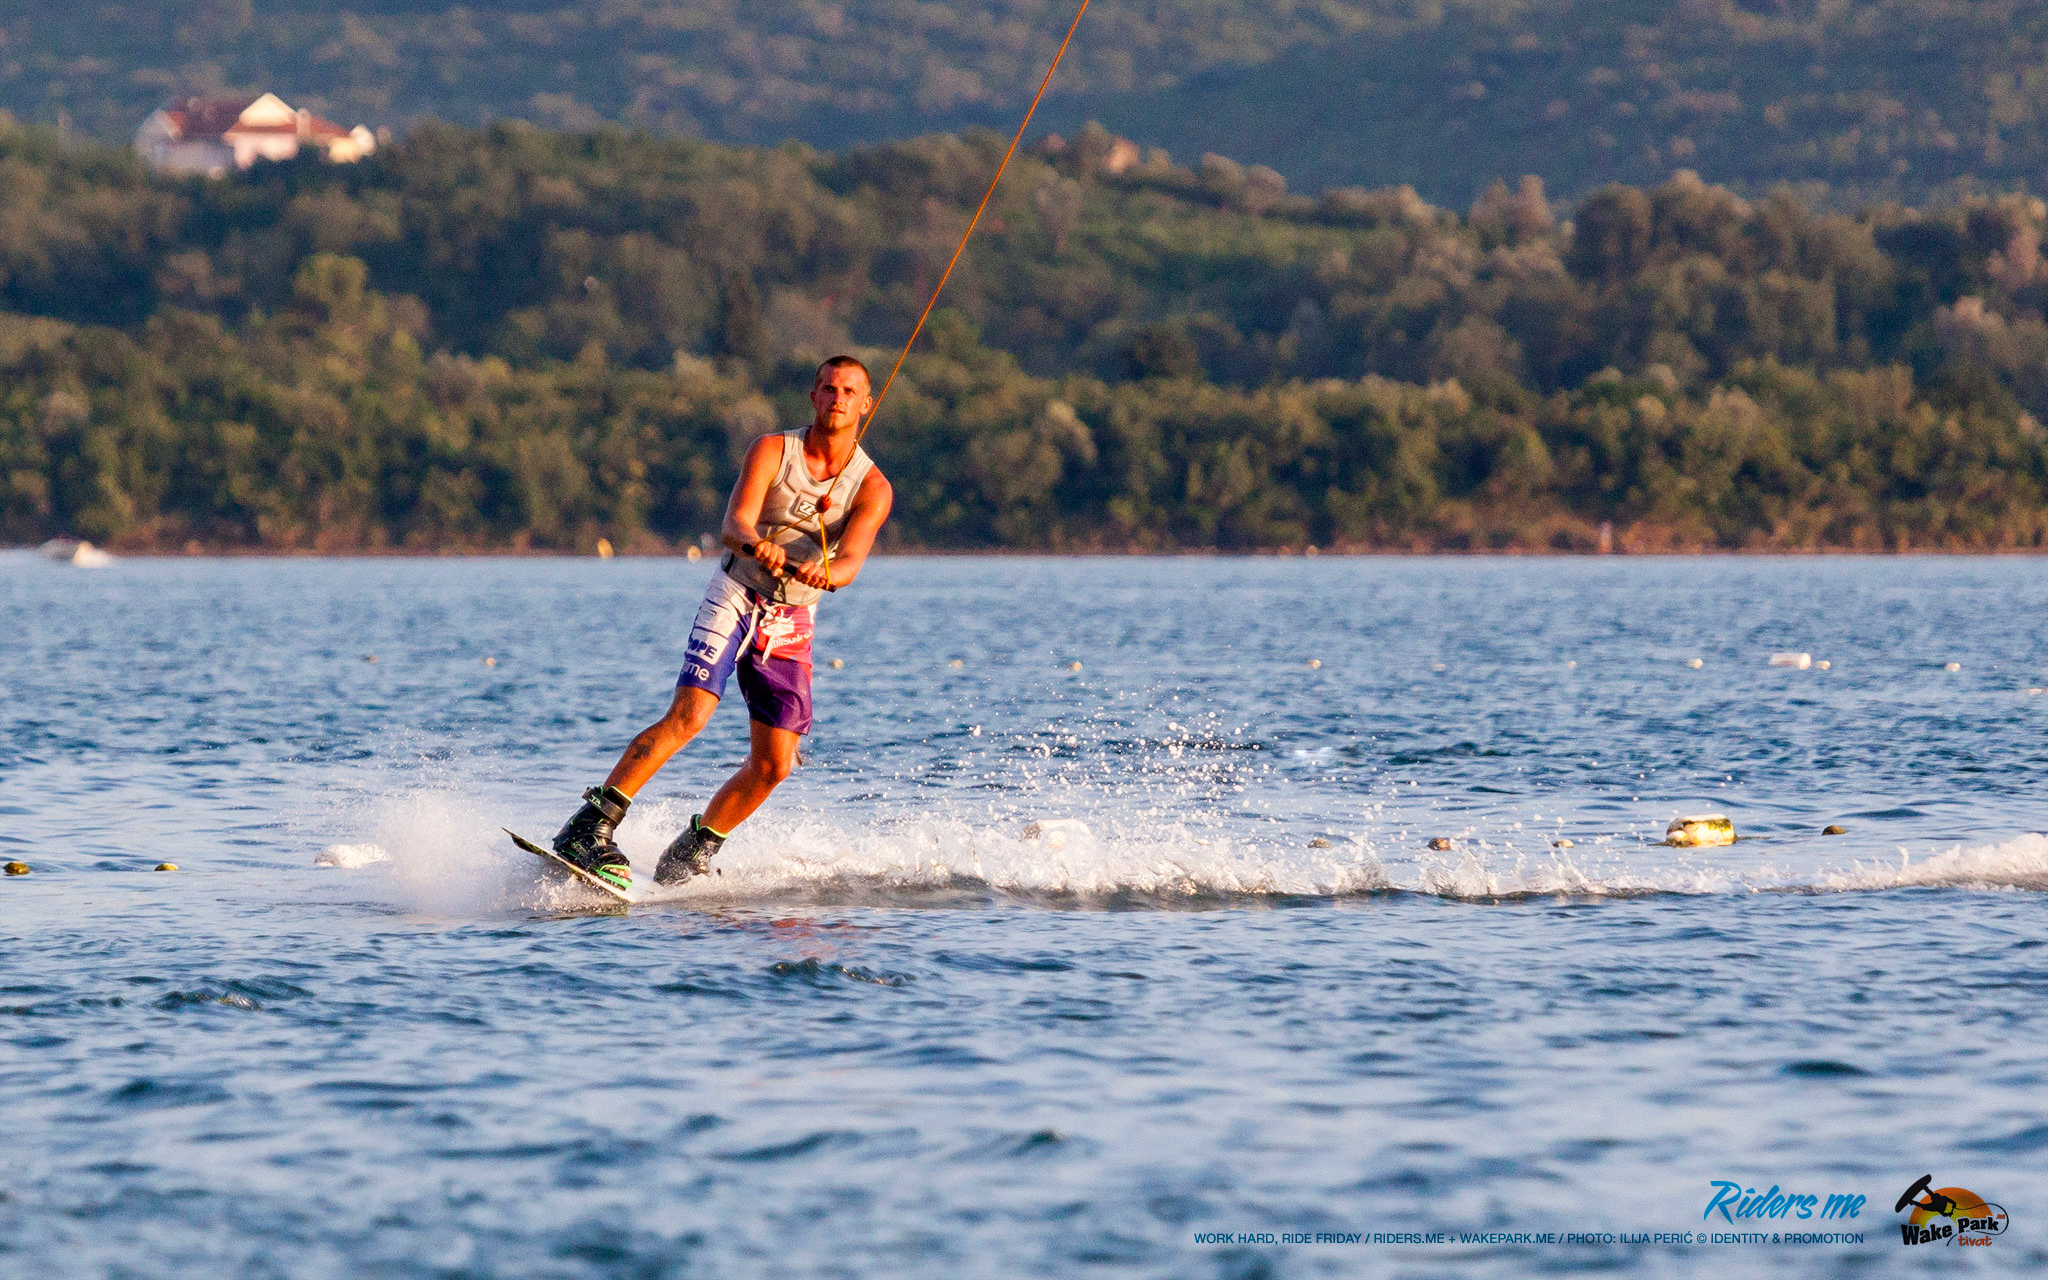 work hard, ride friday - wakepark.me © riders.me